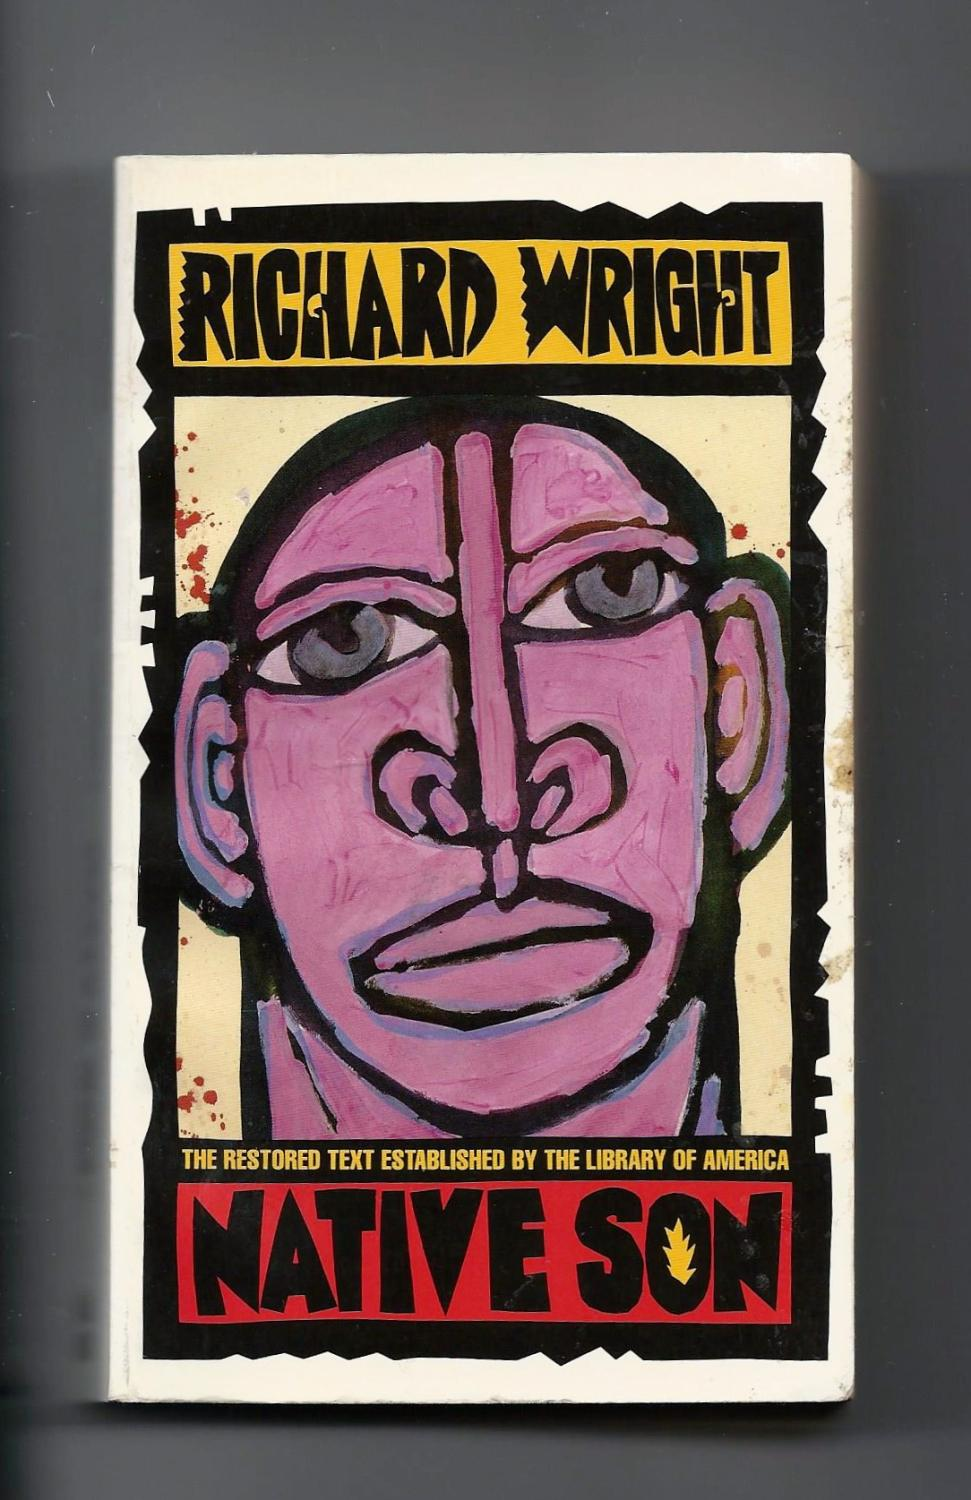 an overview of racism in the novel native son by richard wright Native son: top ten quotes, free study guides and book notes including comprehensive chapter analysis, complete summary analysis, author biography information, character profiles, theme analysis, metaphor analysis, and top ten quotes on classic literature.